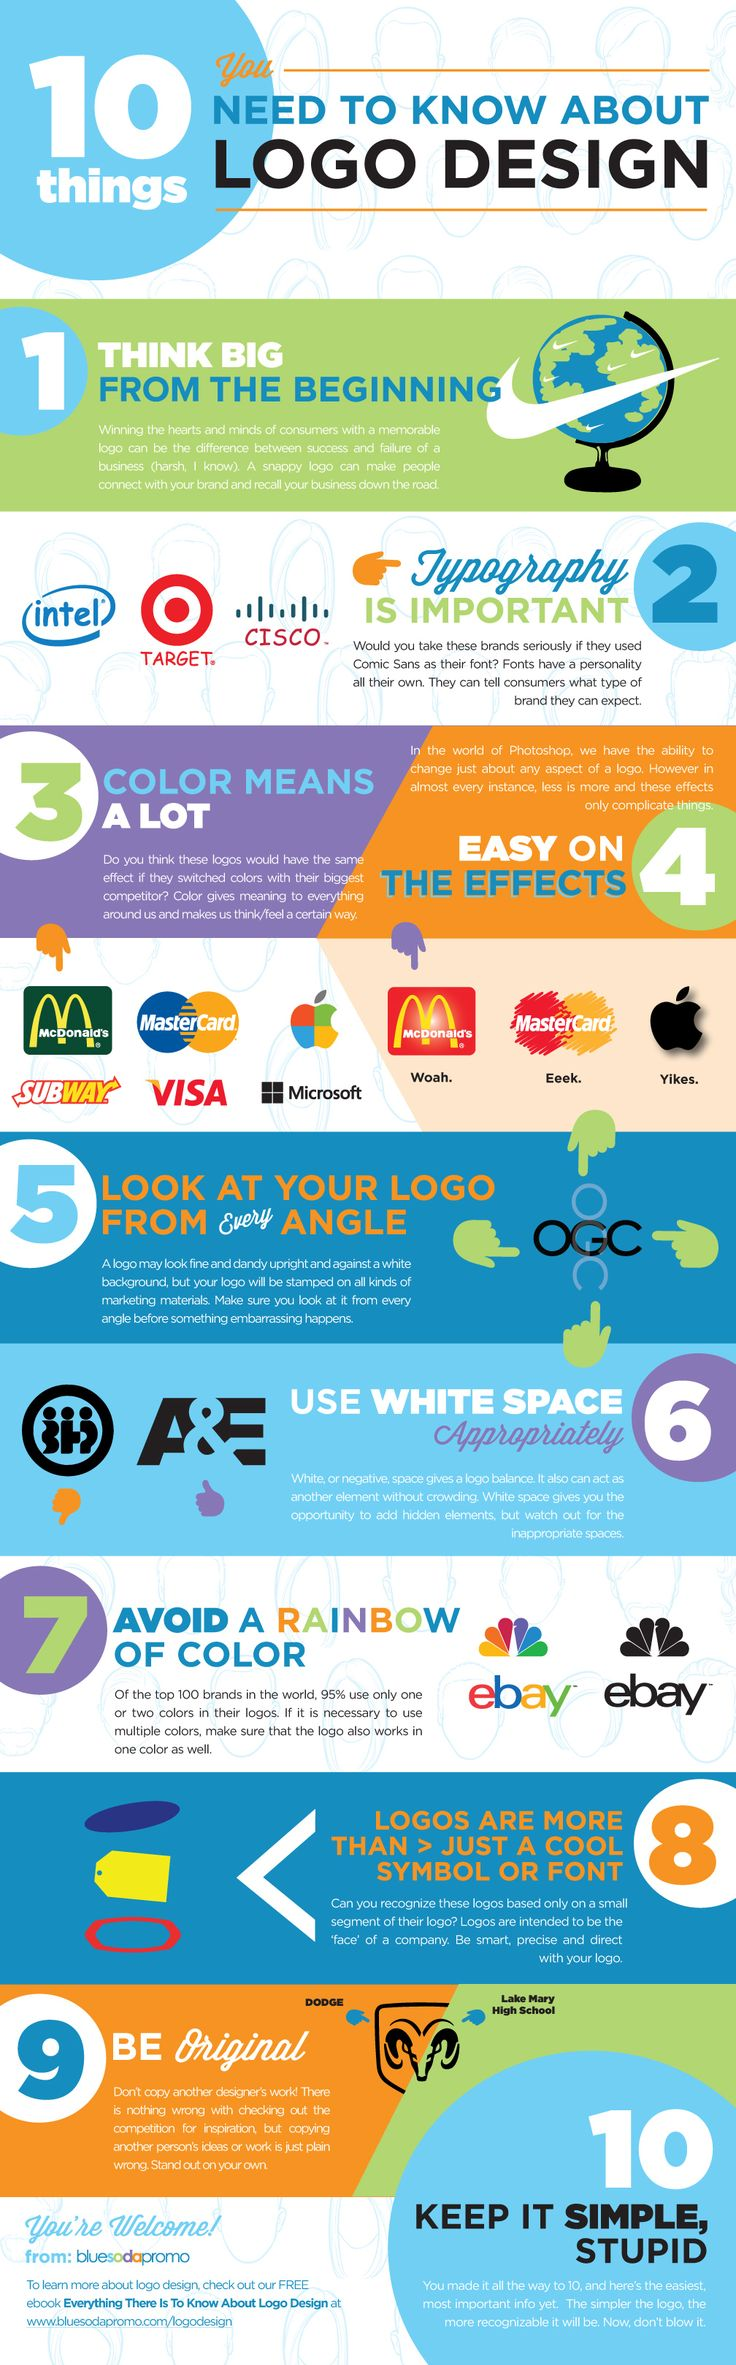 10 Things You Need To Know About Logo Design - Starting out in logo design? This infographic will help set you straight.